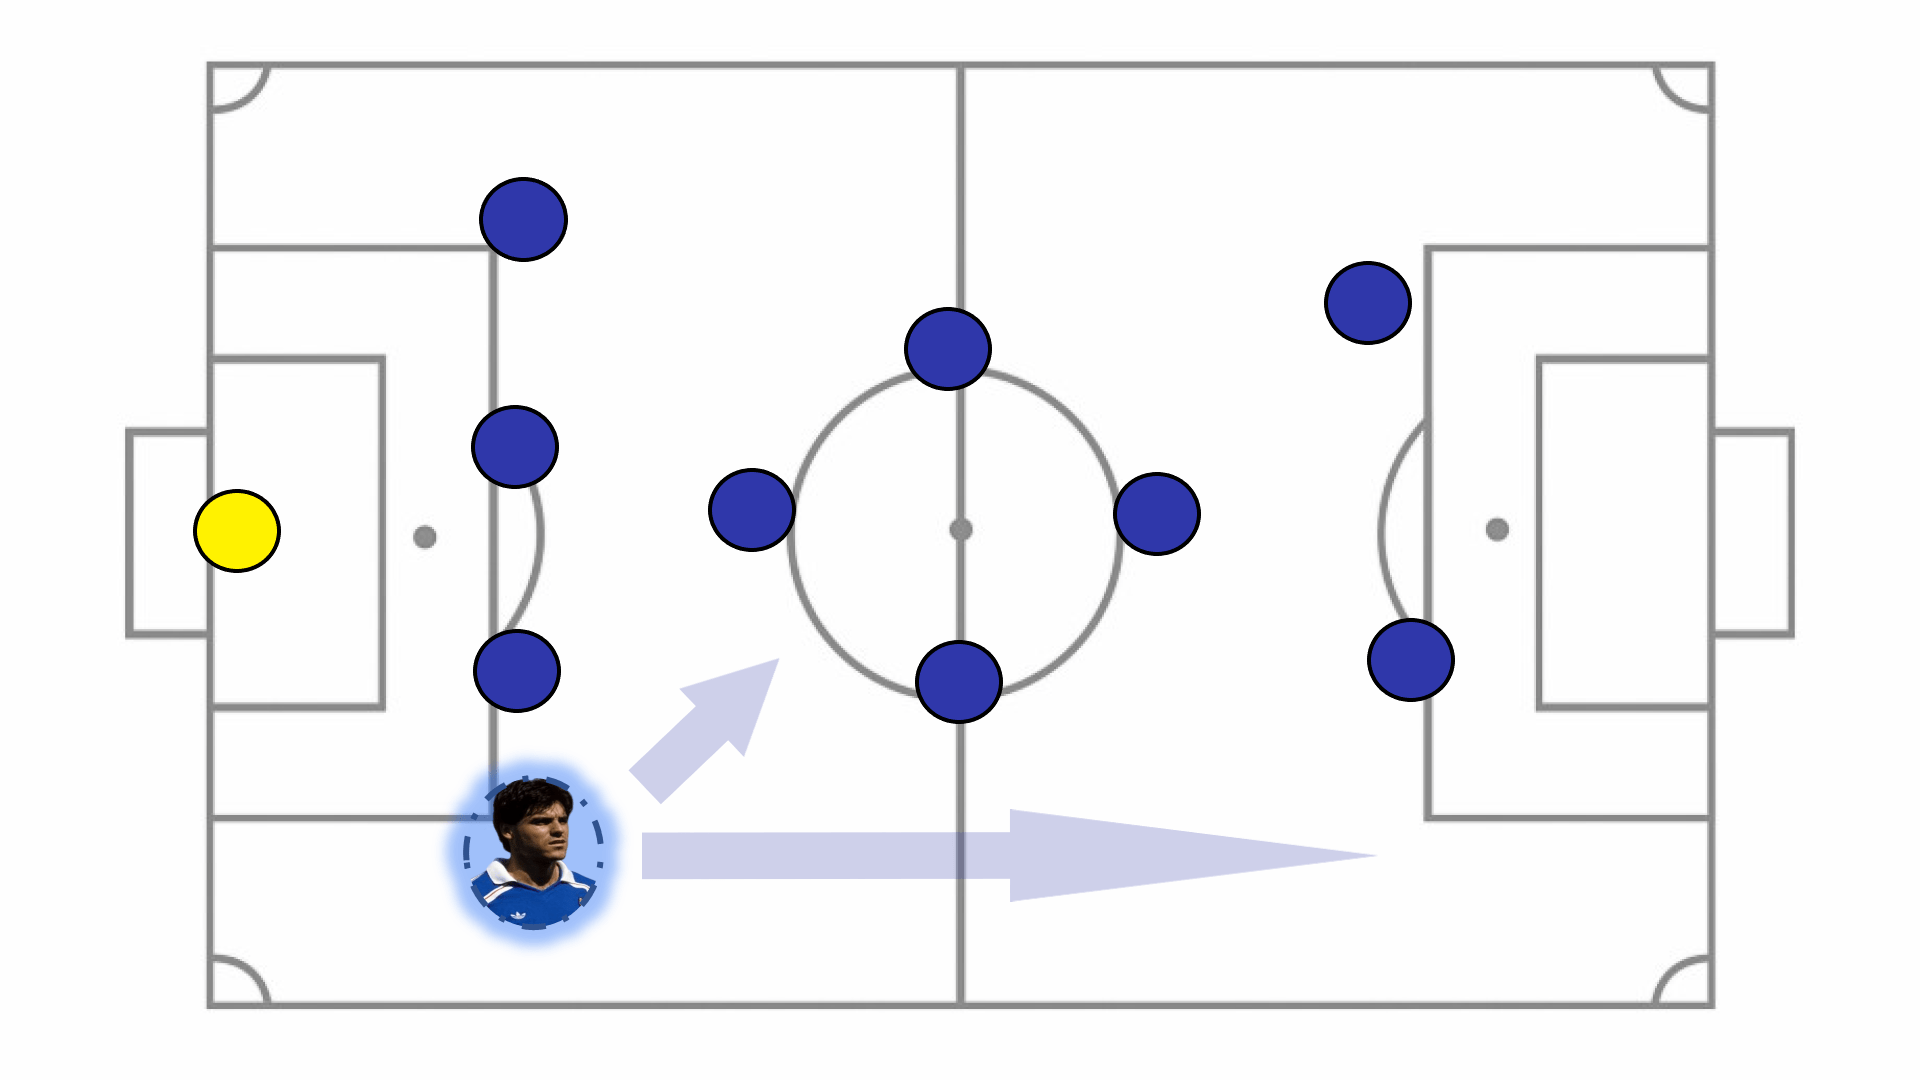 Amoros was deployed on either flank. Due to his versatility he was able to combine with the midfield as well as provide width in a very narrow French set up.